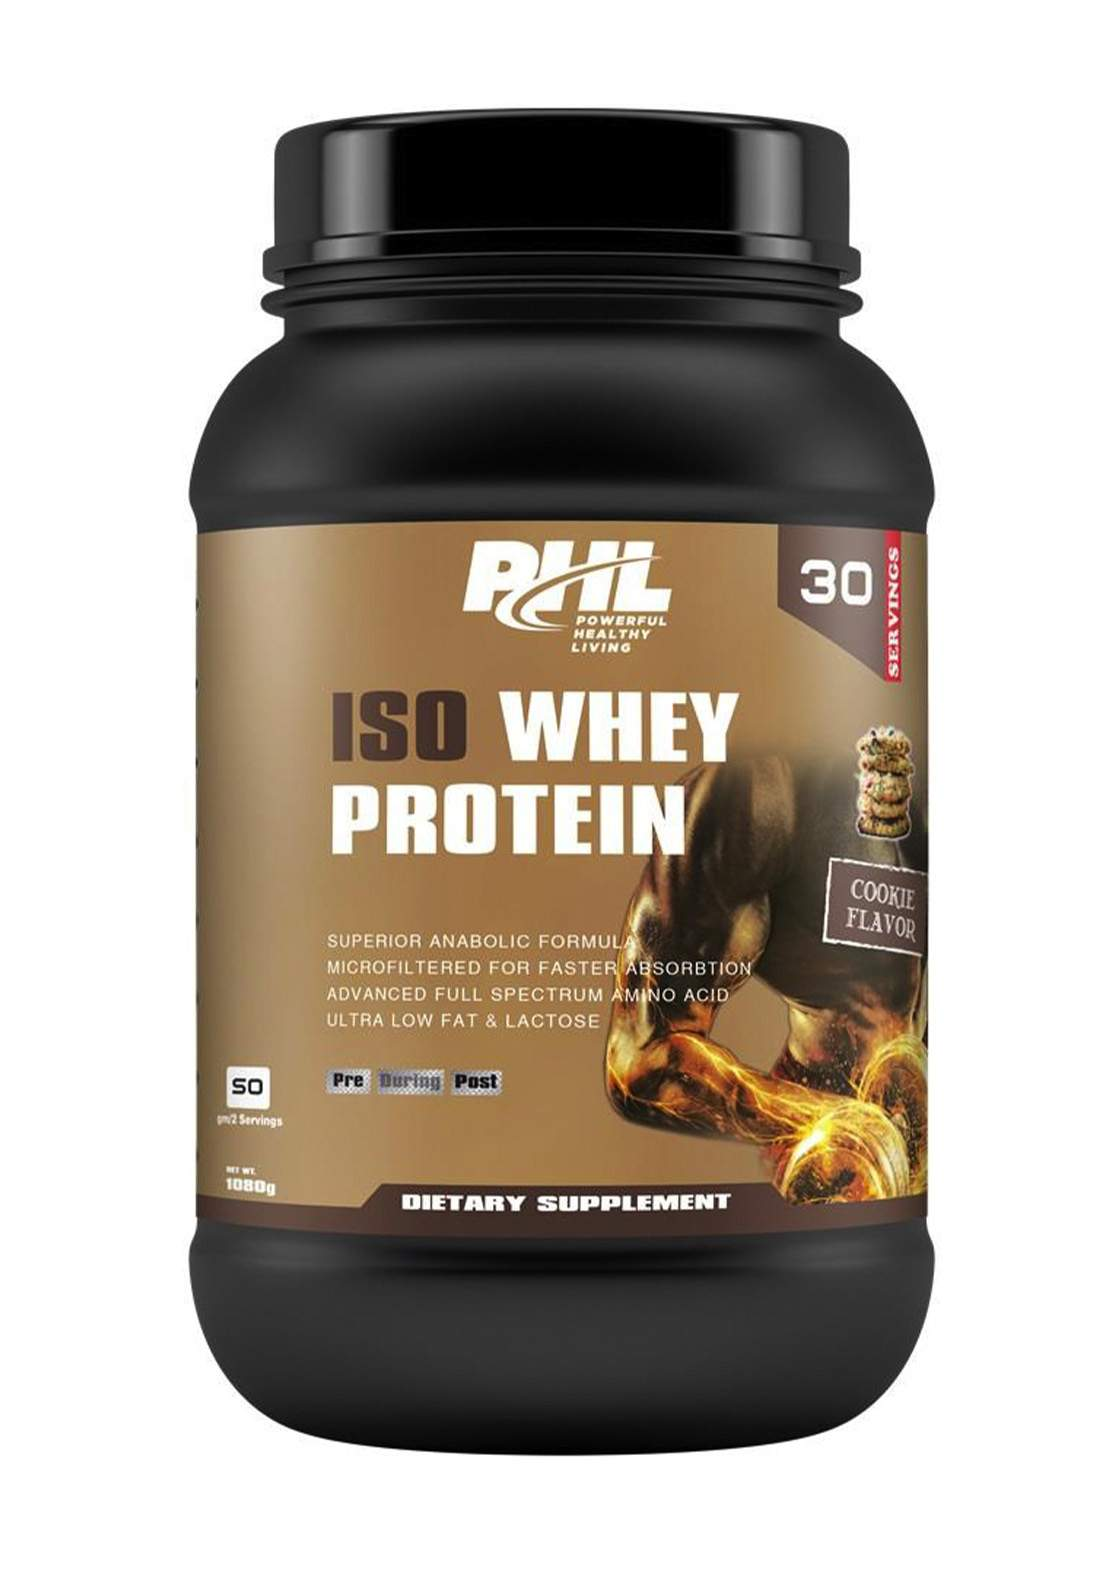 PHL Iso Whey Protein Cookie 1080 g 30 servings مسحوق بروتين